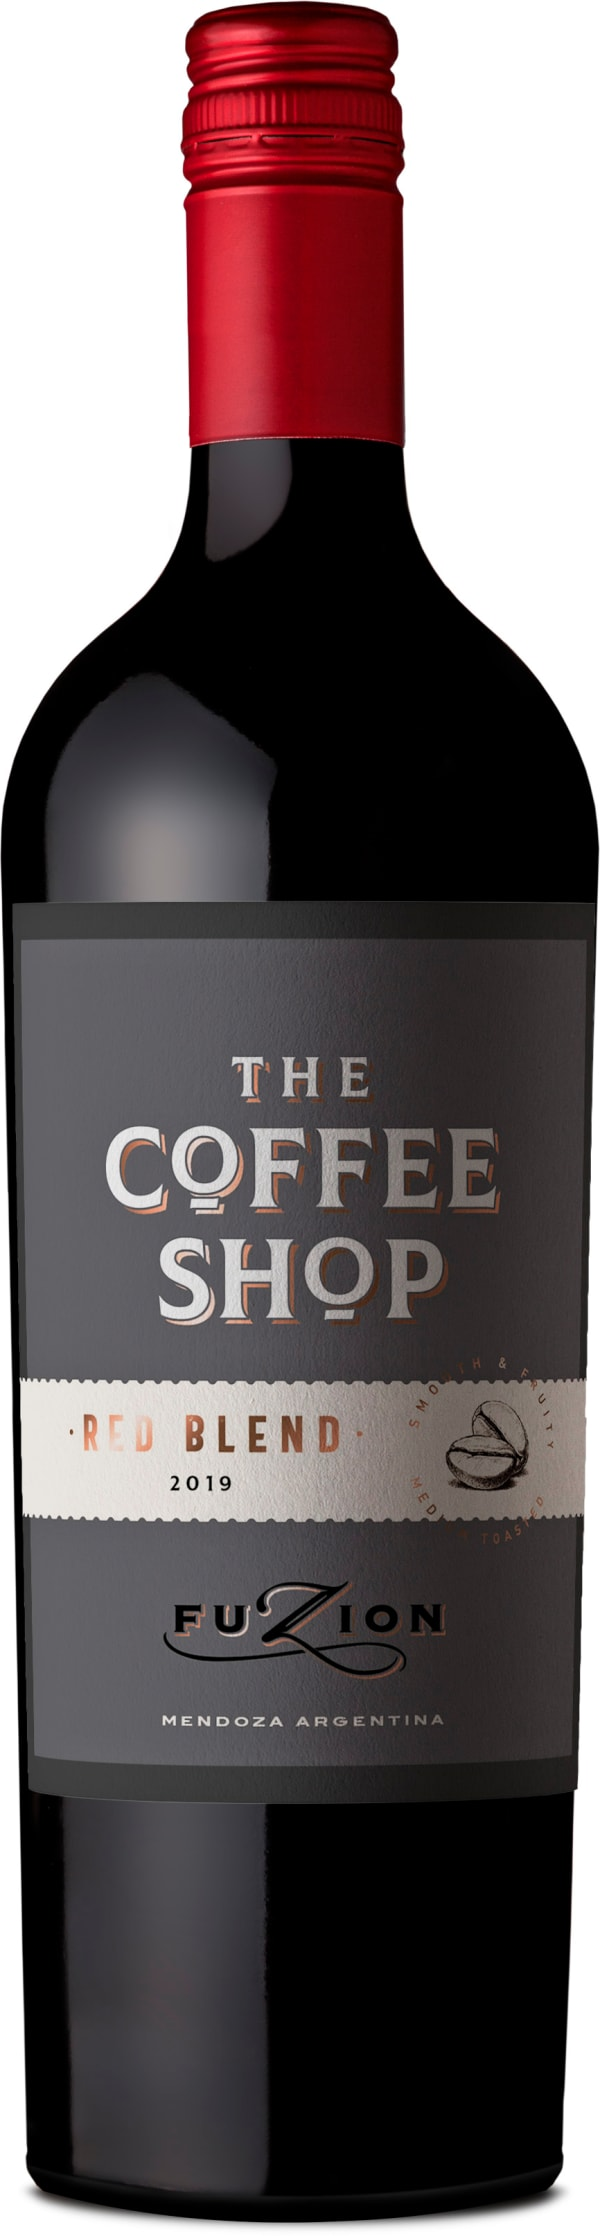 Fuzion The Coffee Shop Red Blend 2017